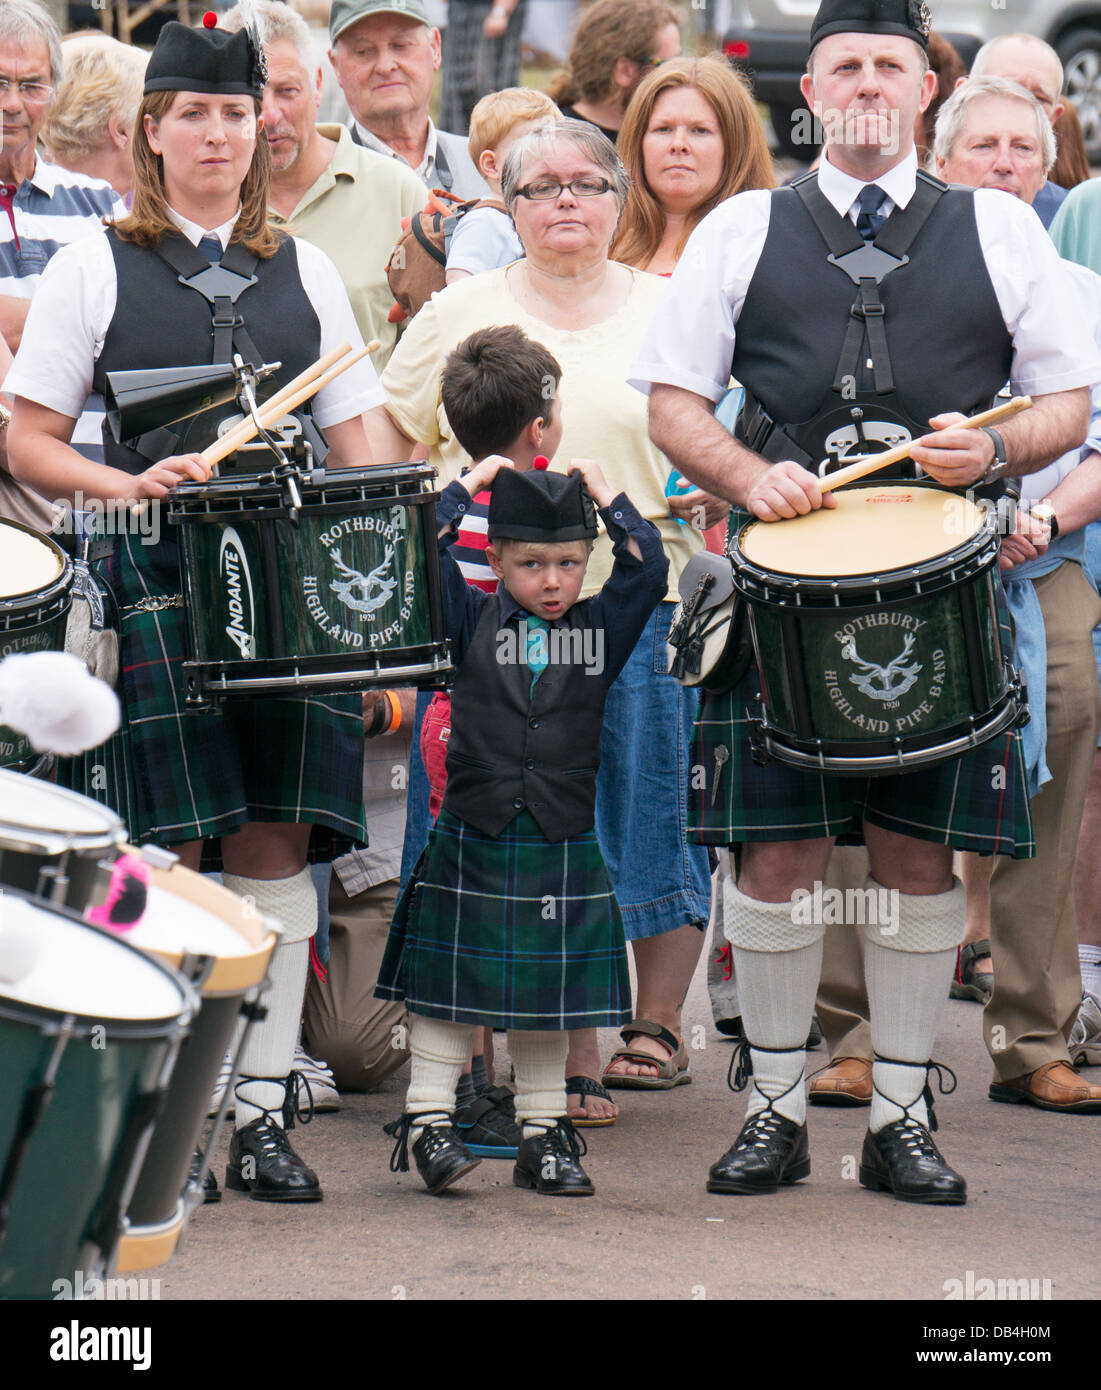 family-members-of-rothbury-highland-pipe